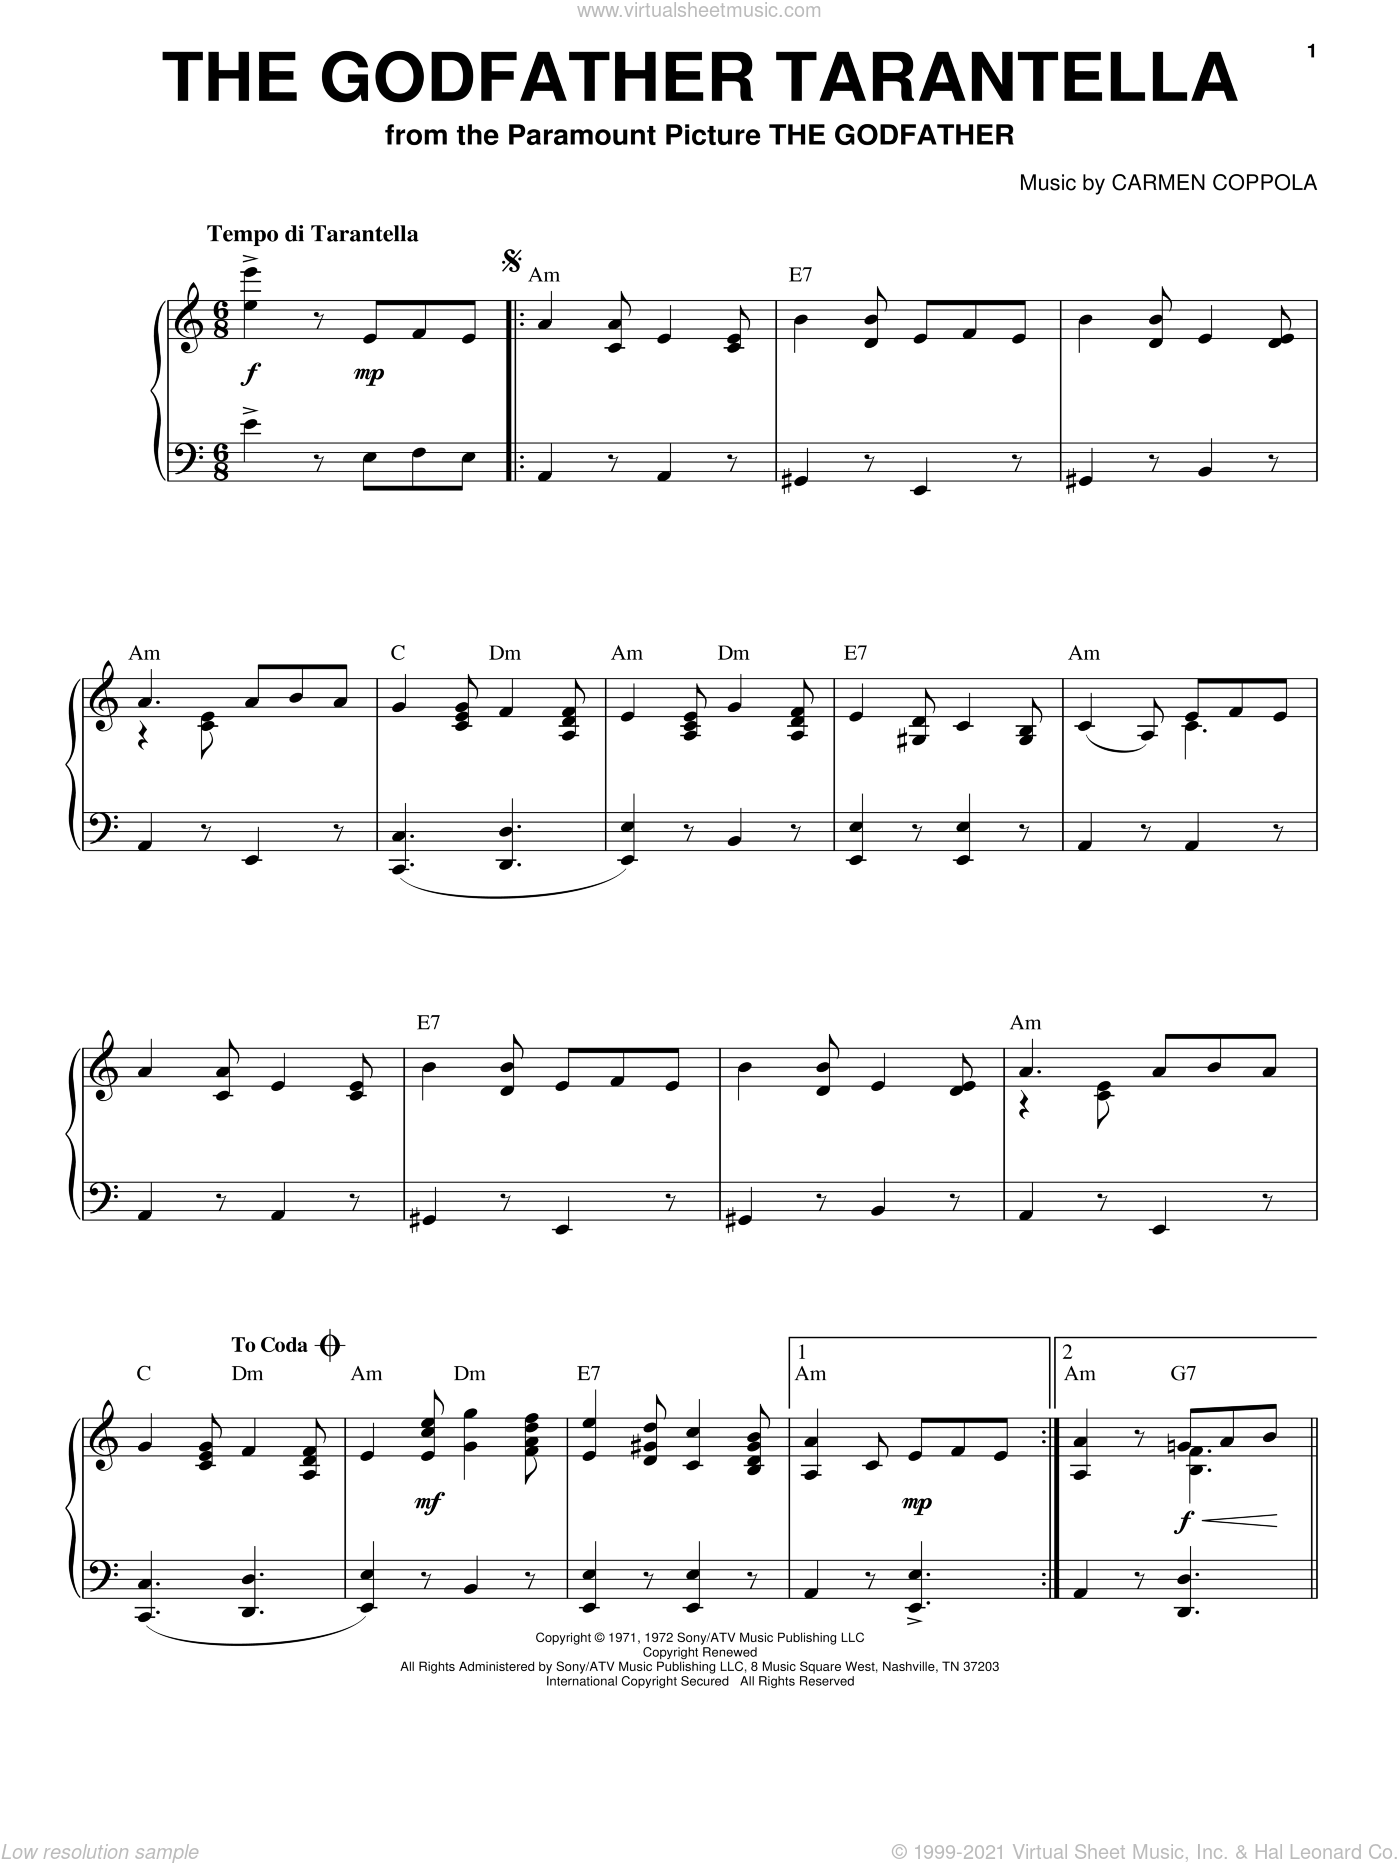 The Godfather Tarantella sheet music for voice, piano or guitar by Carmen Coppola, classical score, intermediate skill level